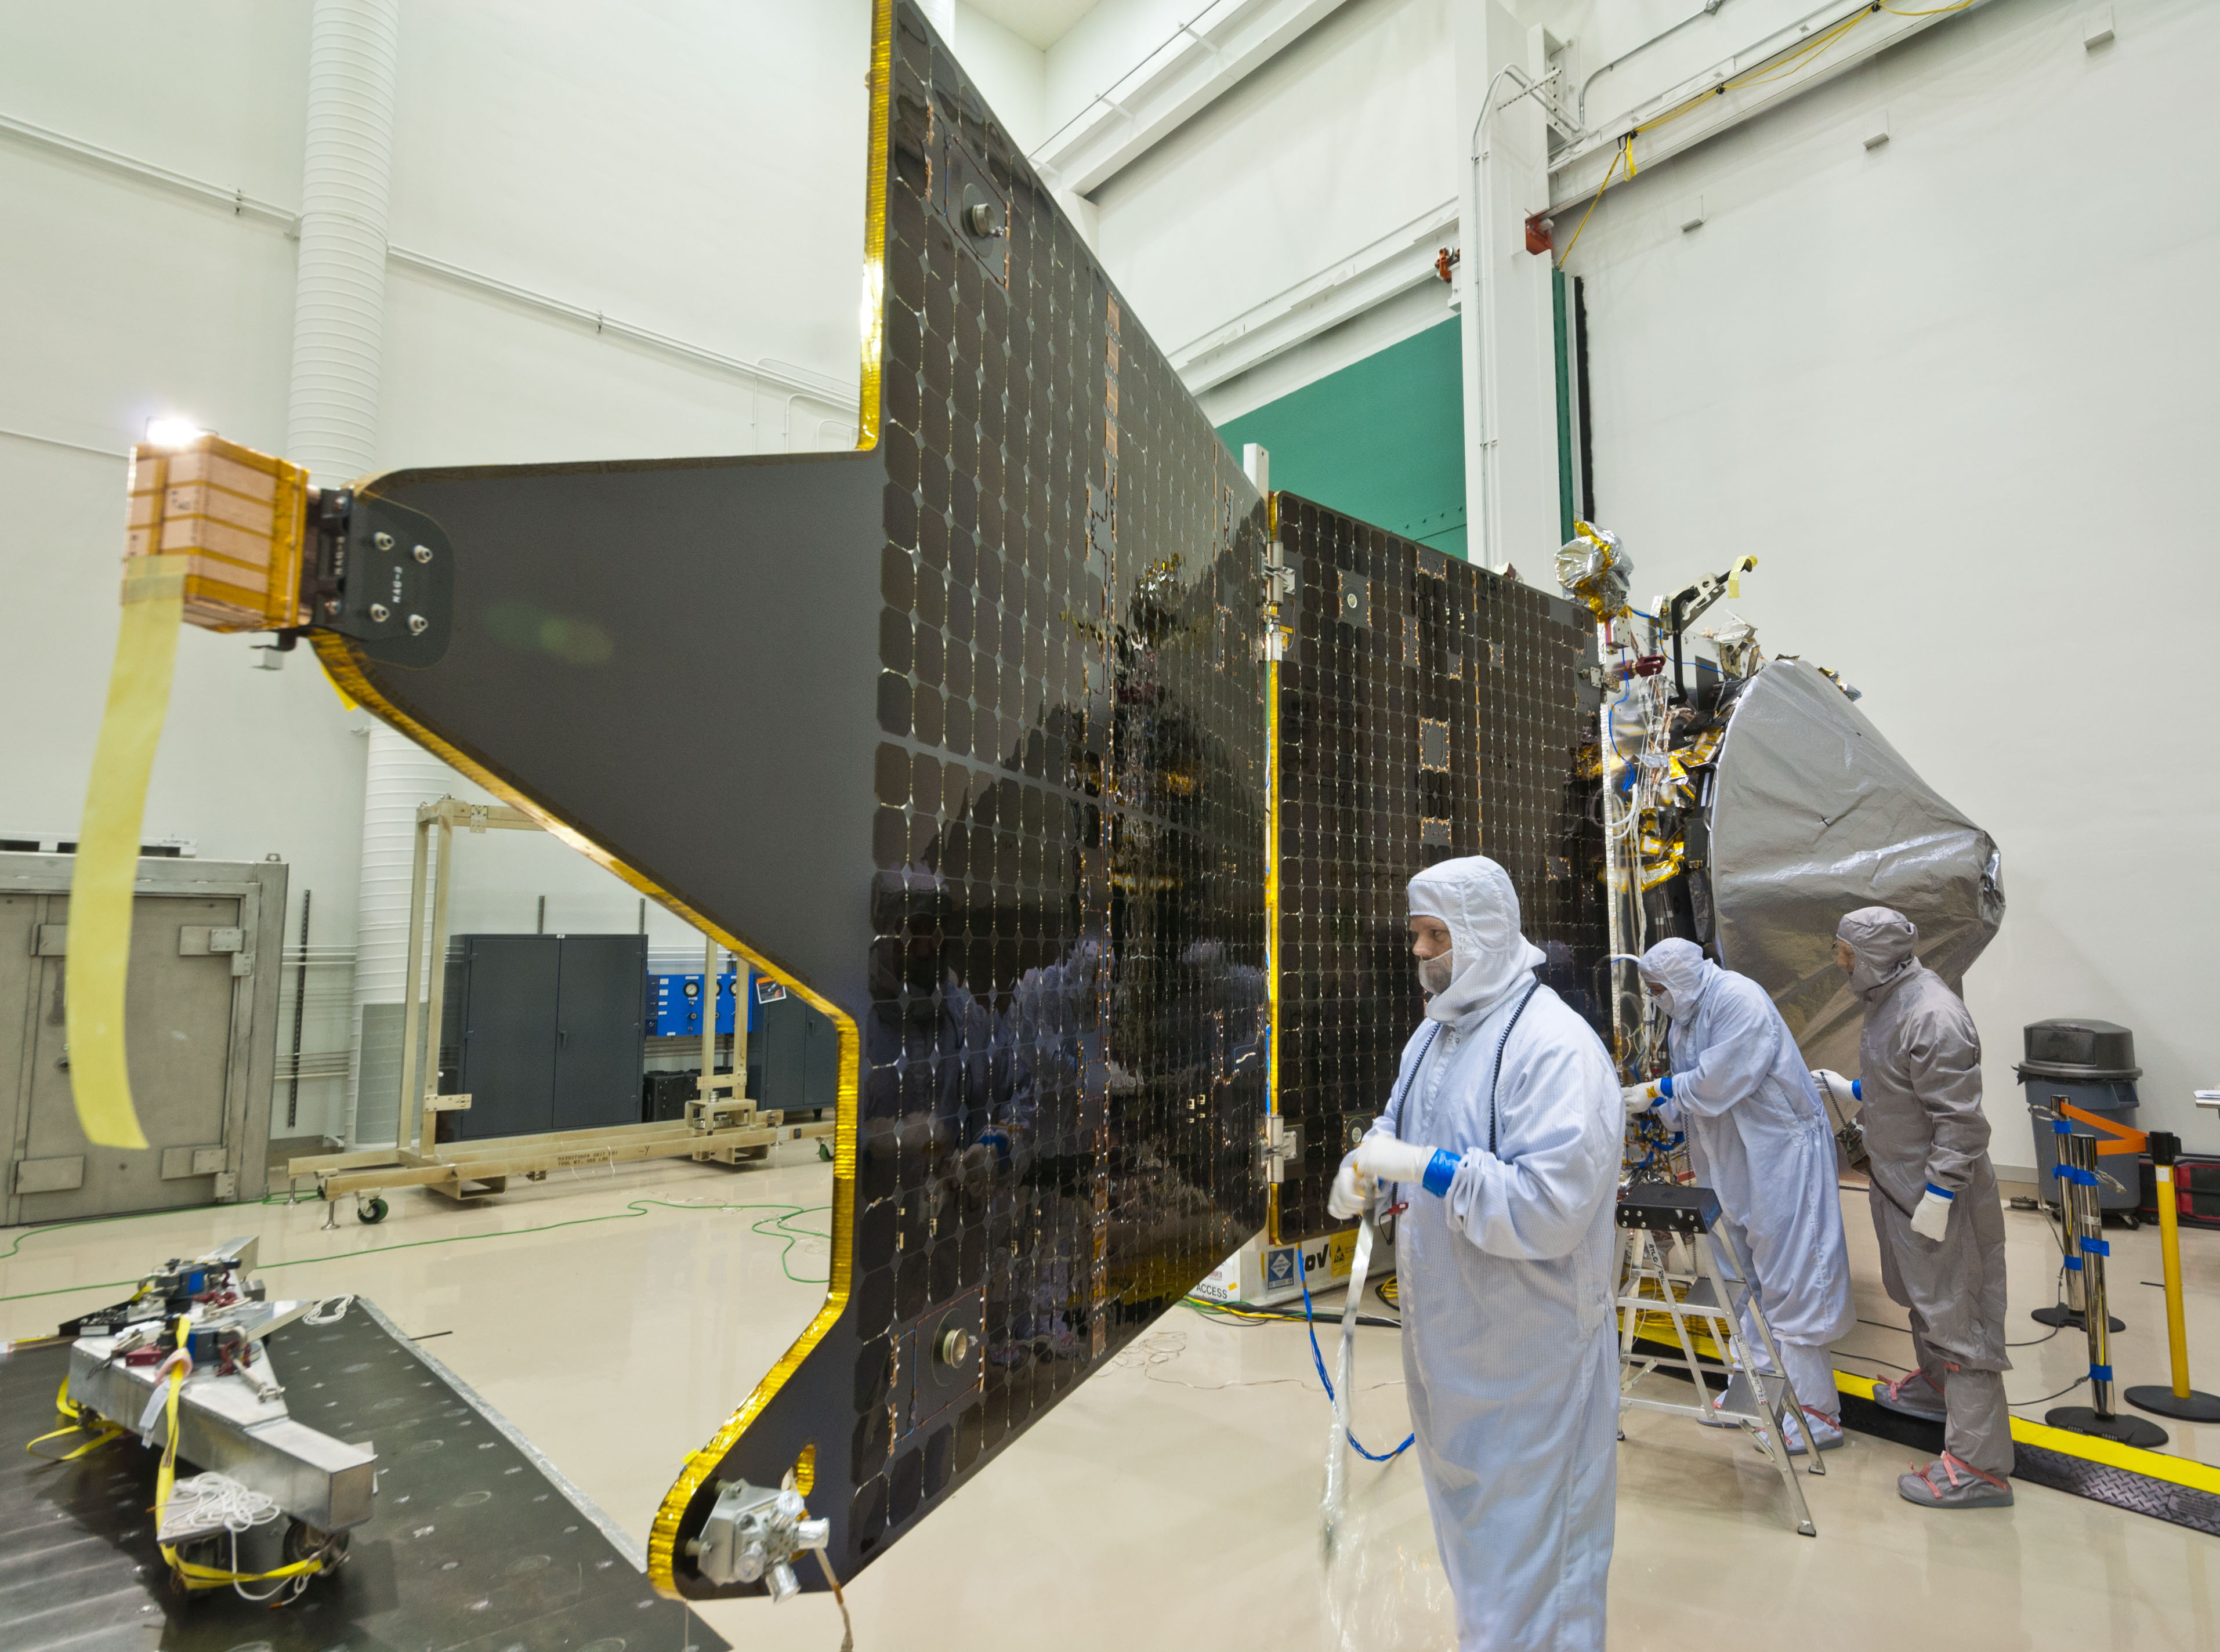 Maven Mission Completes Assembly Begins Environmental Testing